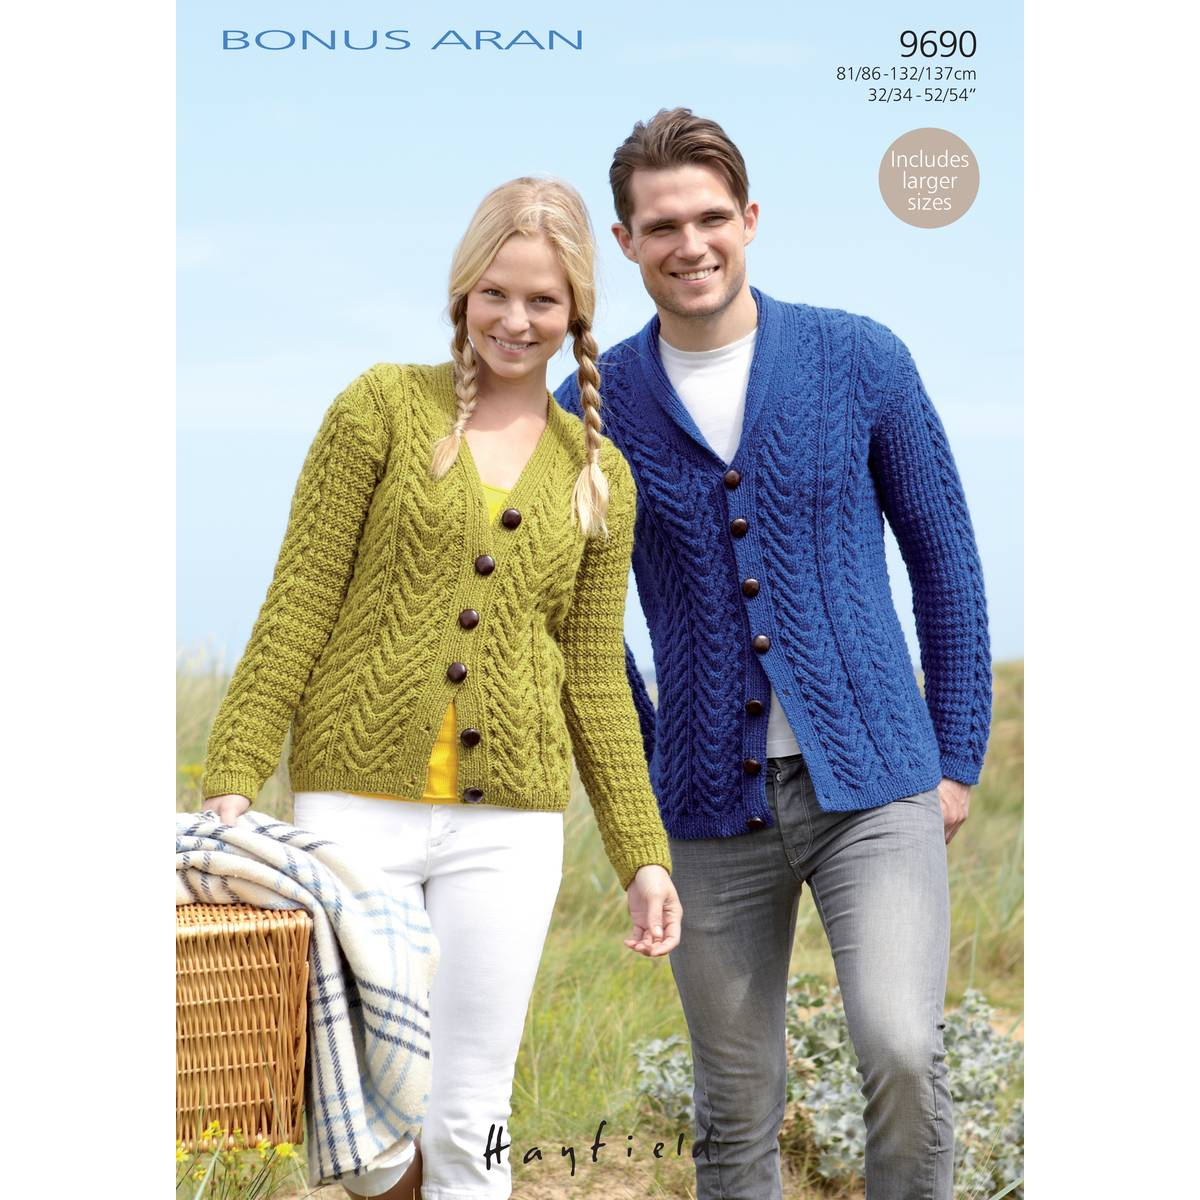 Aran Jumper Knitting Patterns Free Pattern Hayfield Bonus Aran Cardigans Knitting Pattern Hobcraft